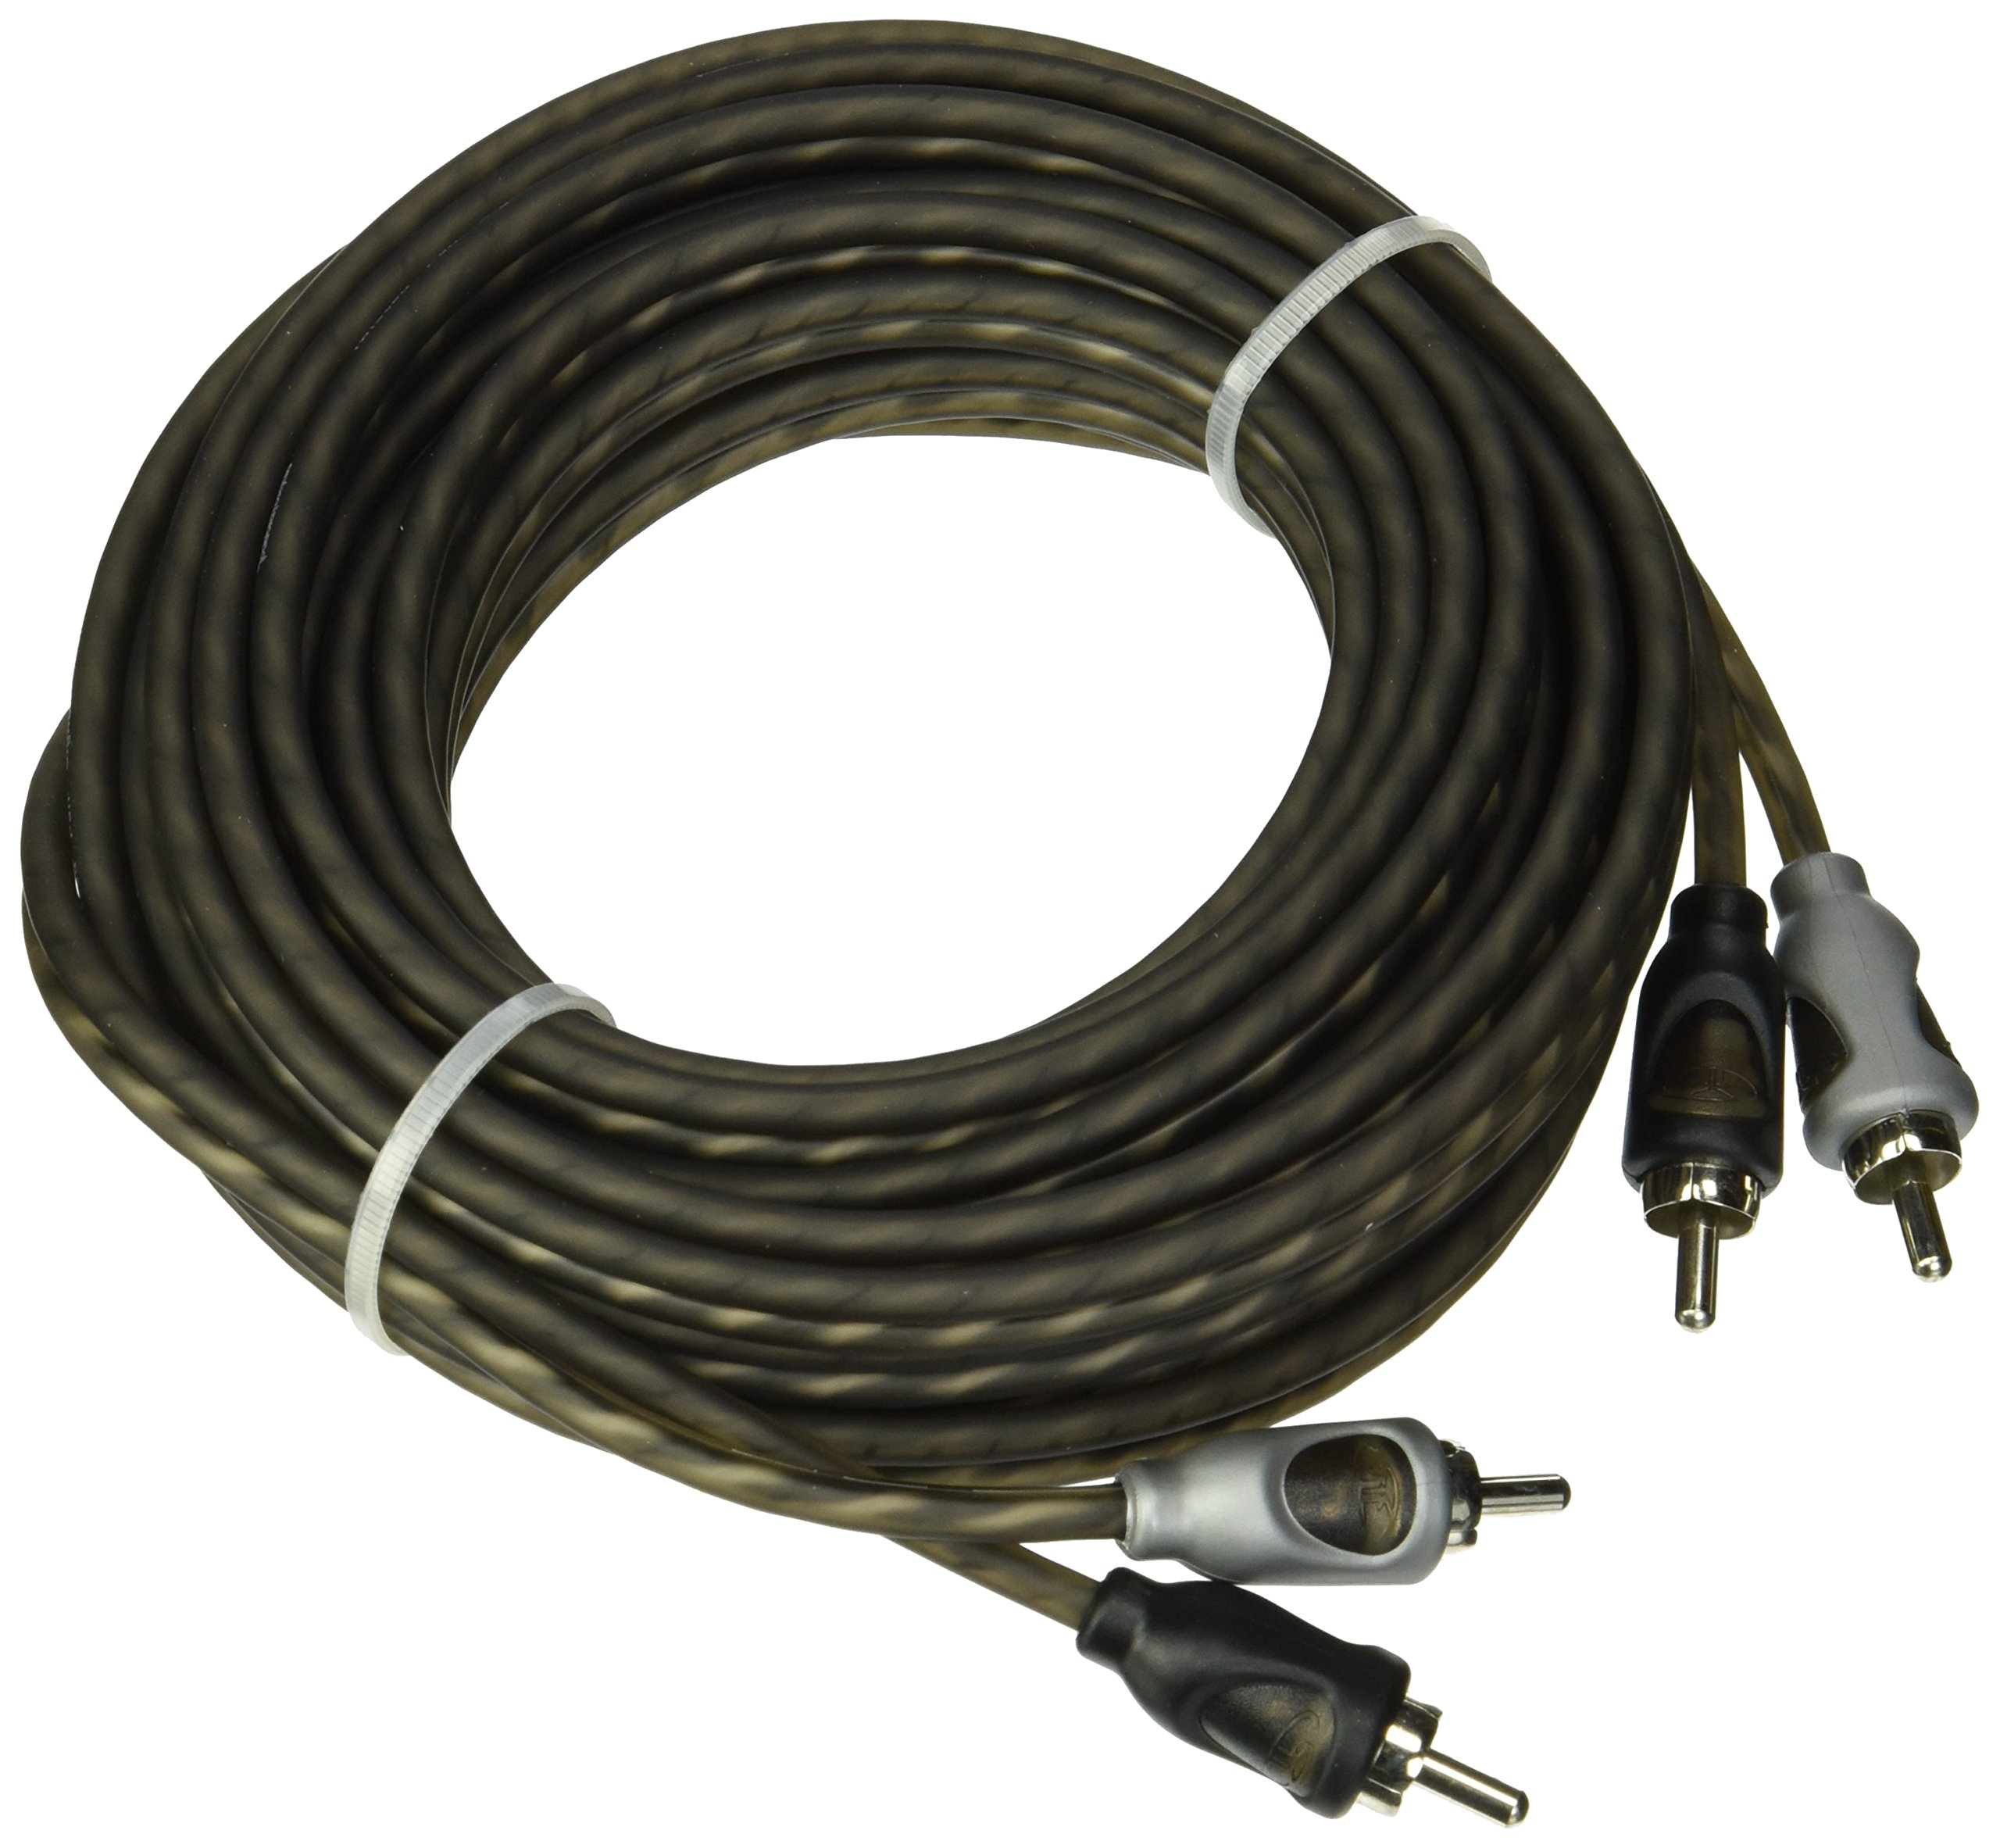 Rockford Fosgate Twisted Pair 20-Feet Signal Cable